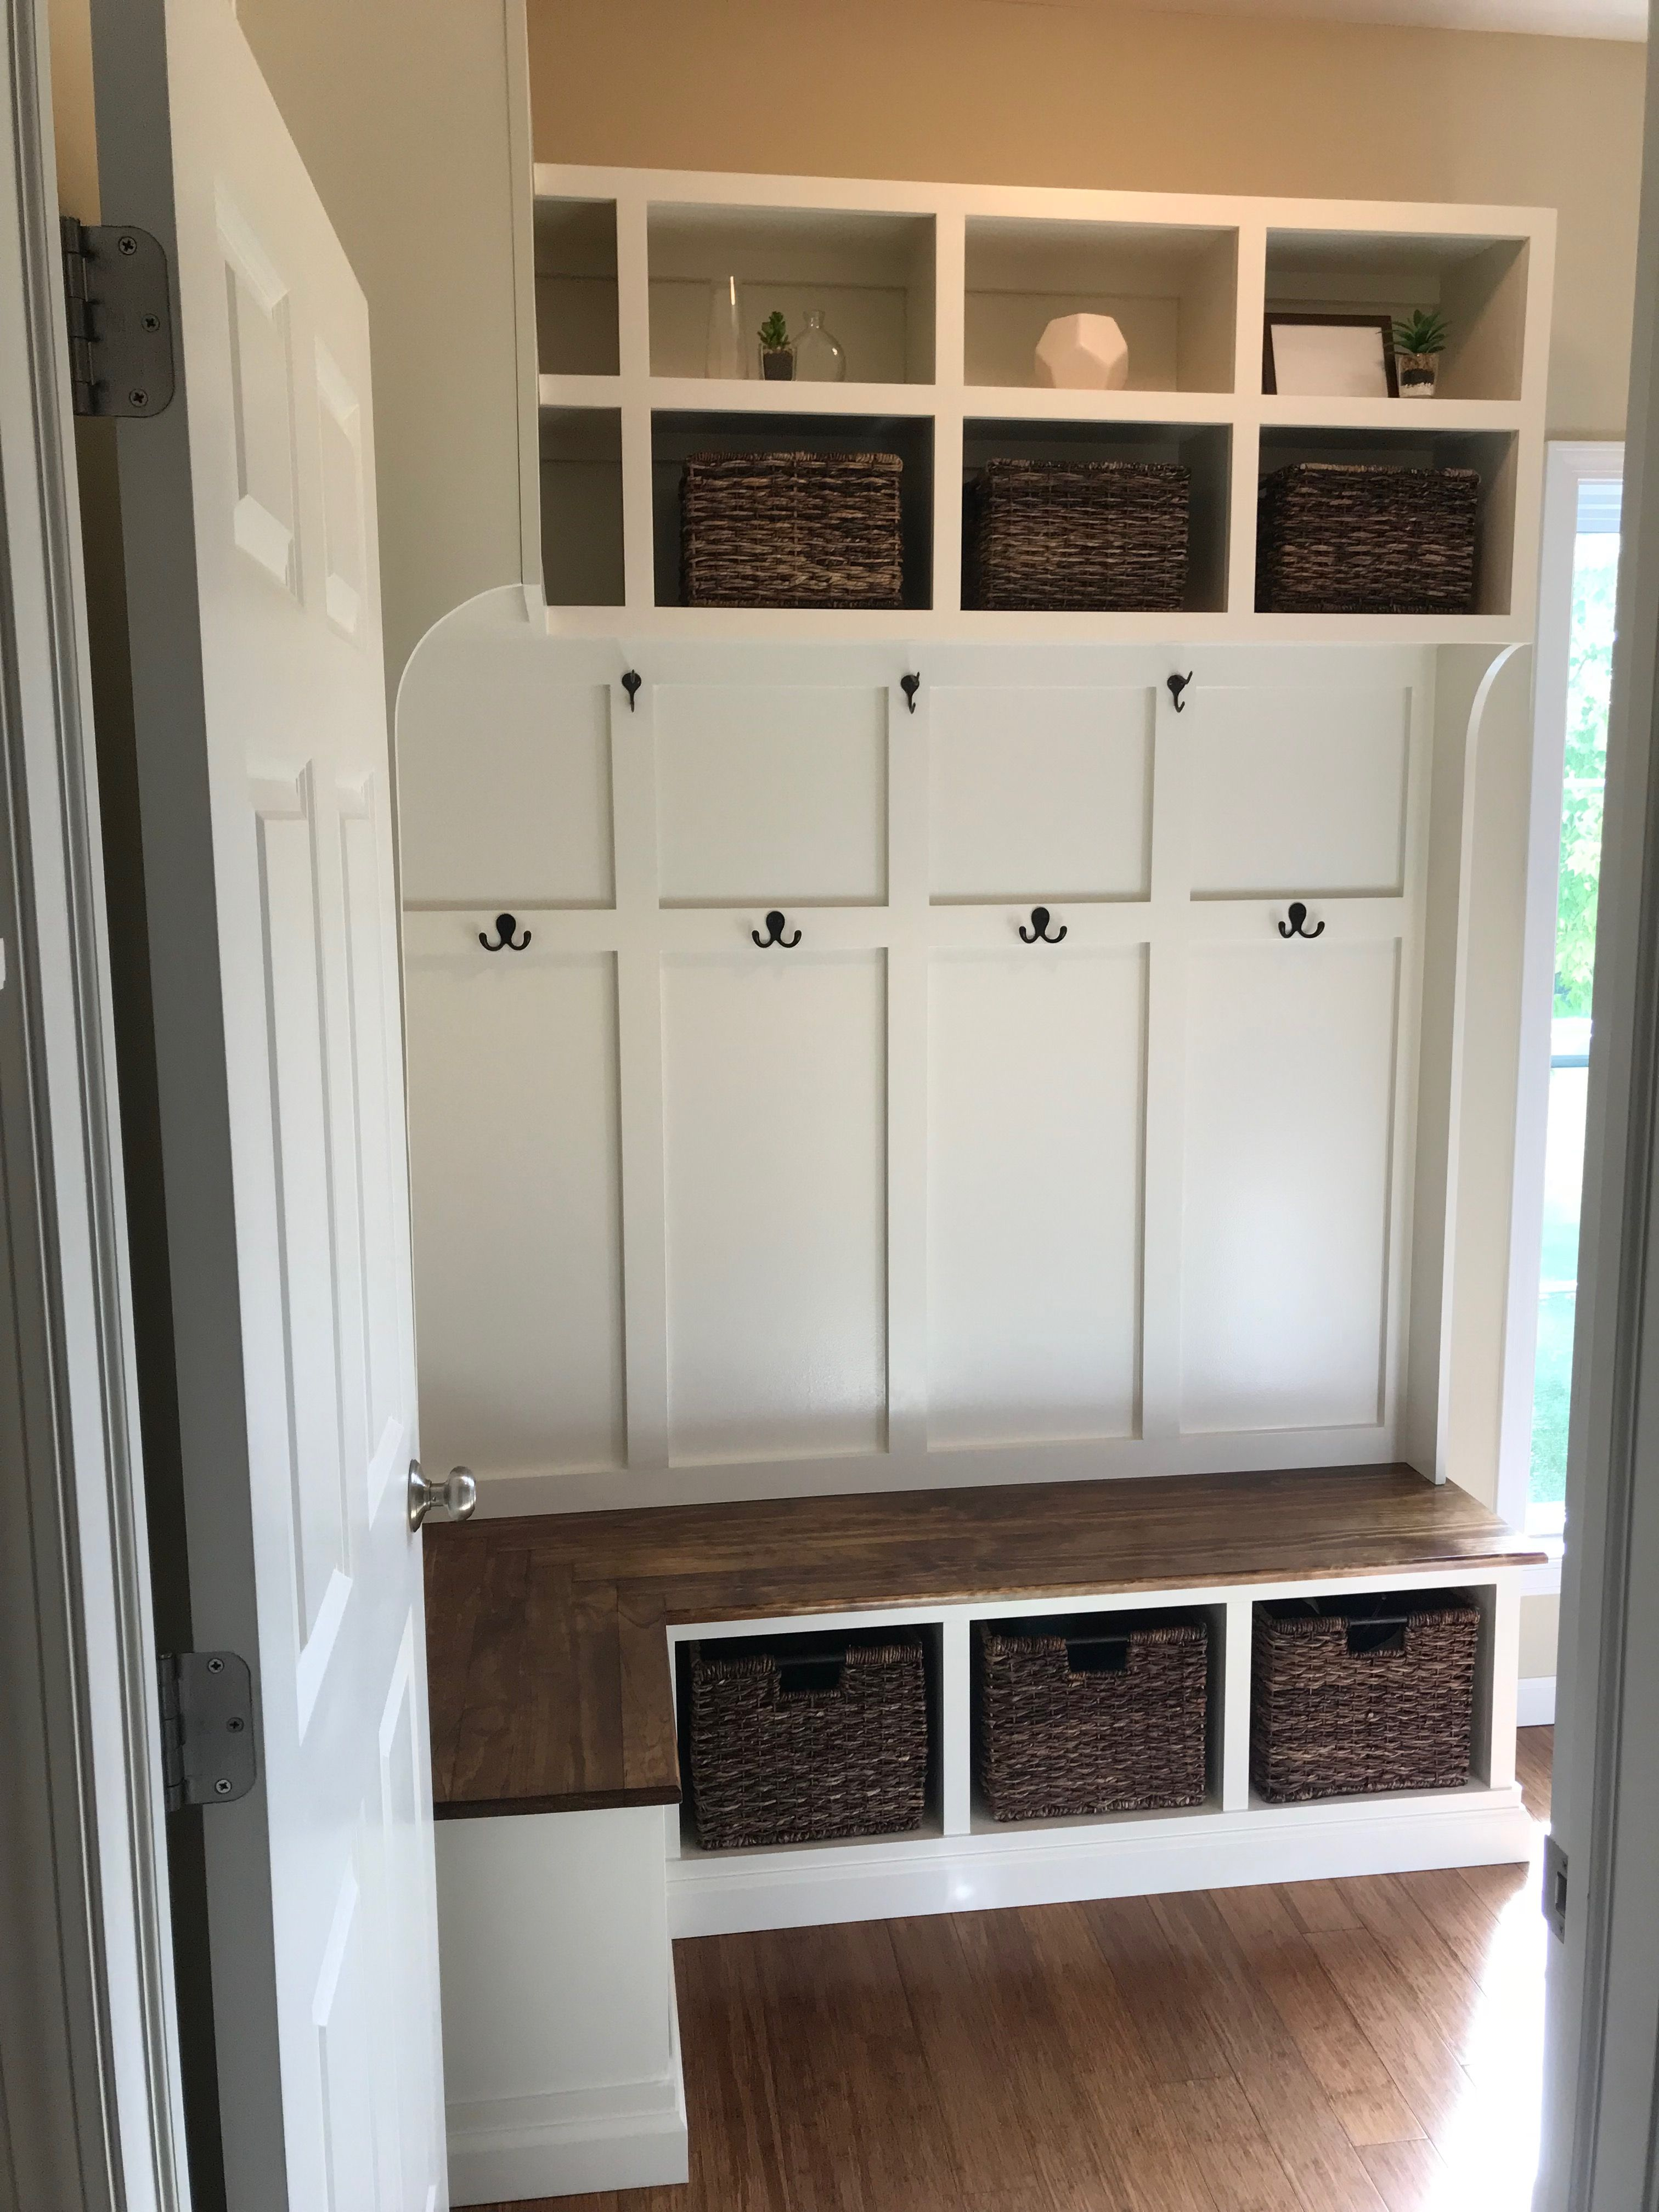 Corner Bench With Tall Cubbies And Hooks Custom Build Designed Around Milk Crate Baskets From Target Mud Room Storage Laundry Mud Room Mudroom